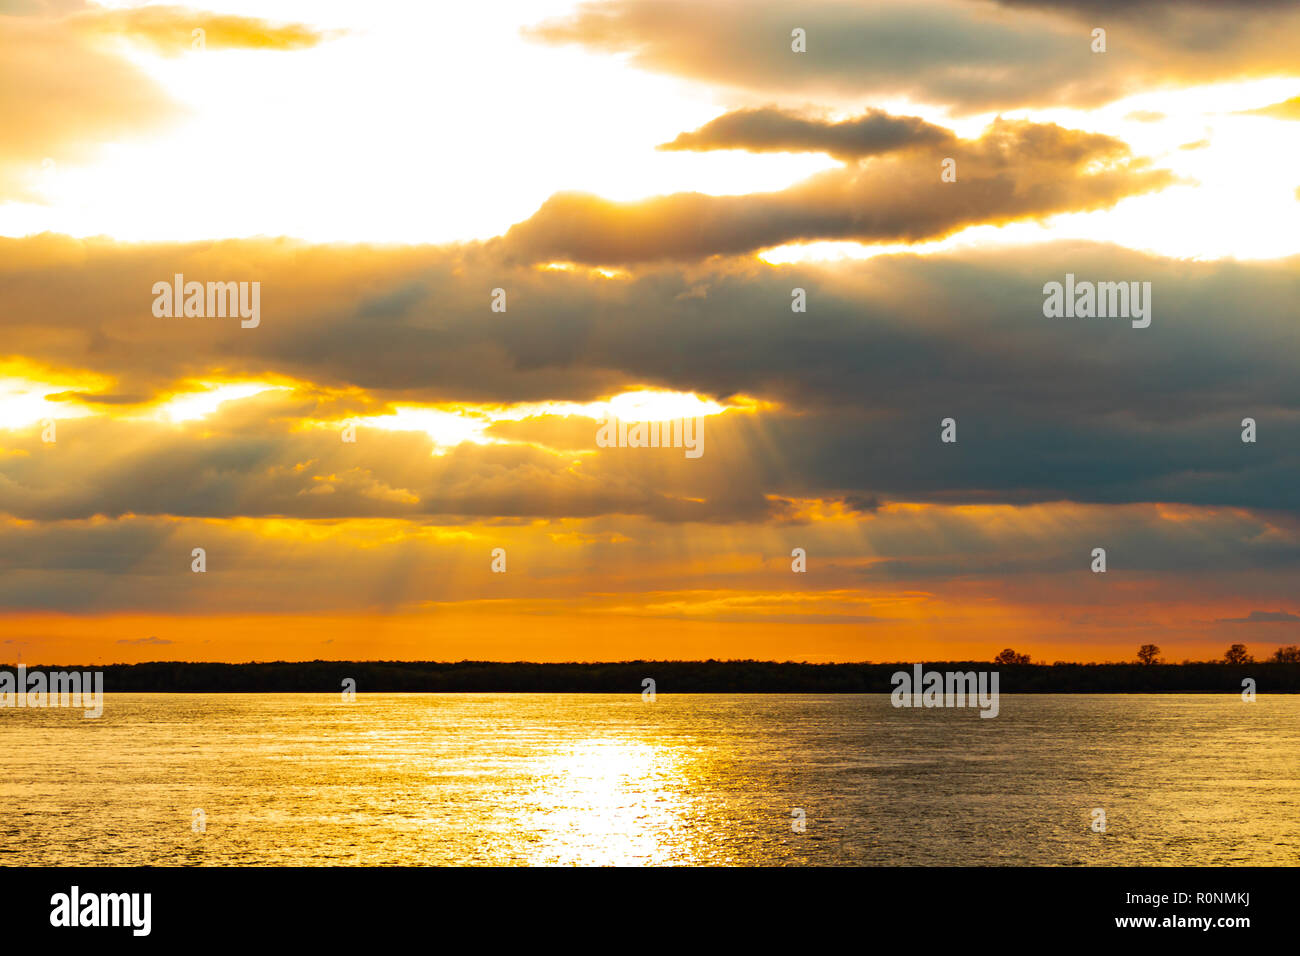 Sunset on the embankment of the Amur river in Khabarovsk. Russia. - Stock Image